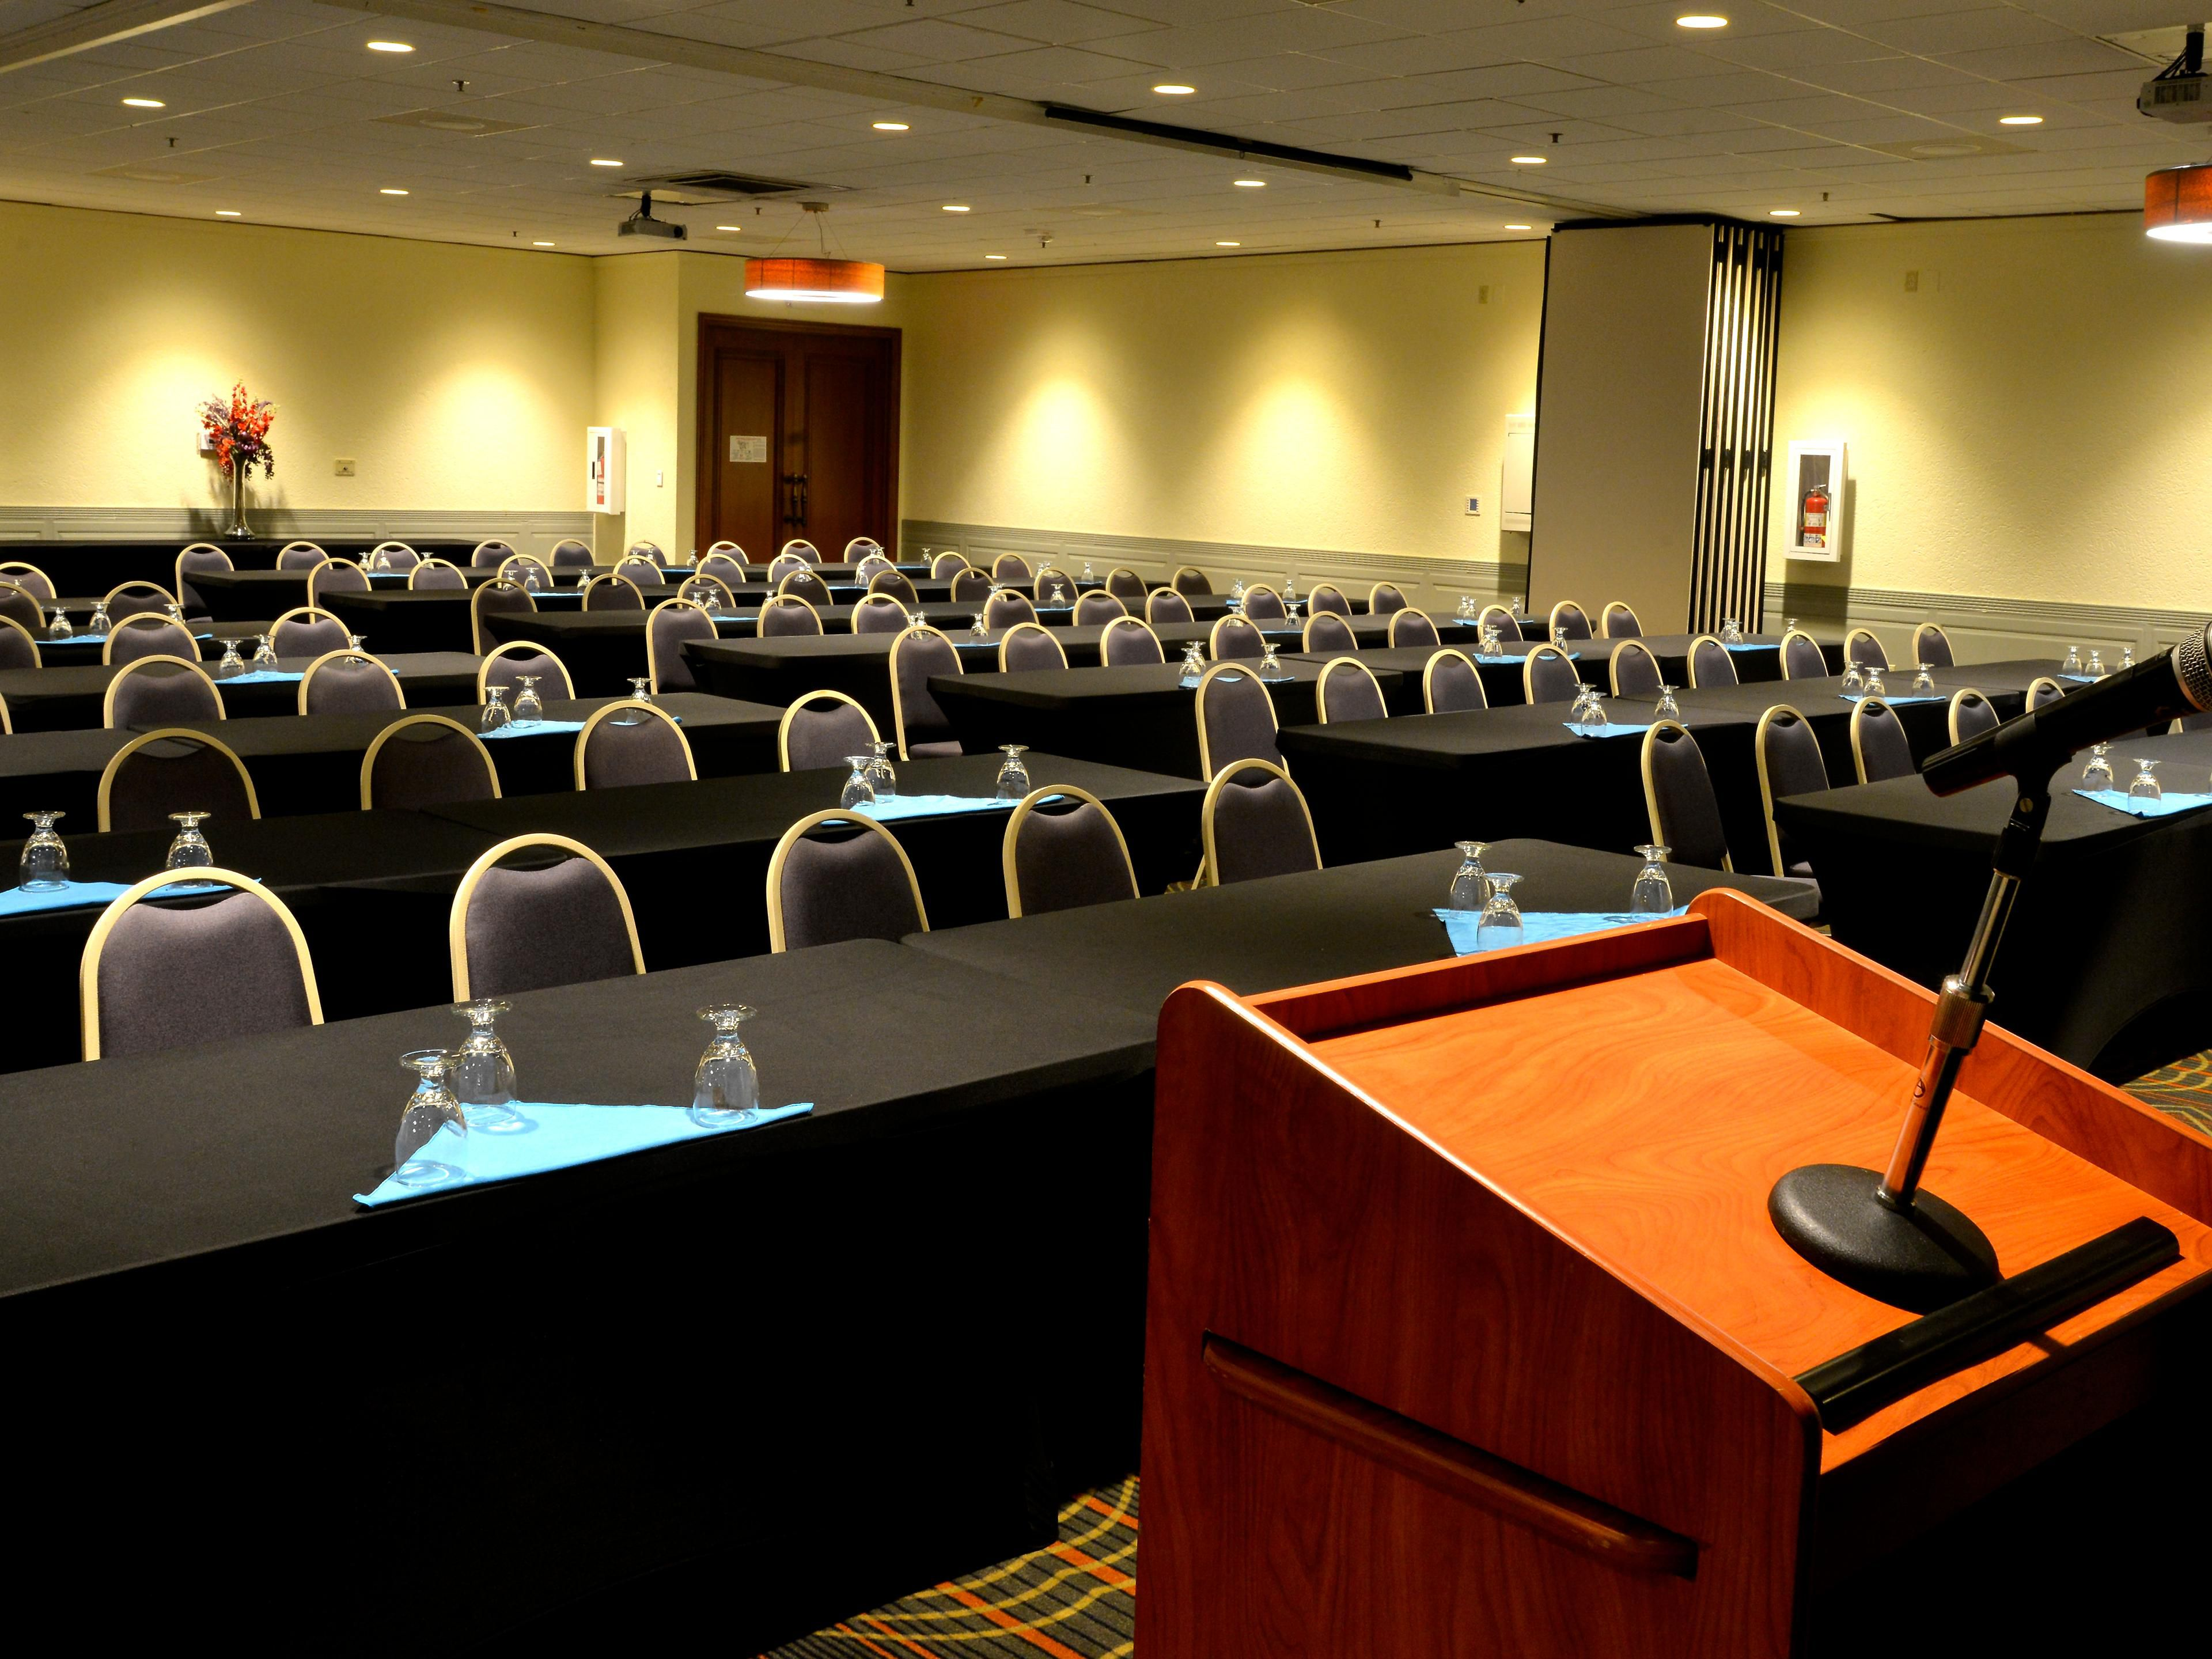 Our Largest Meeting room provides plenty of space four your event